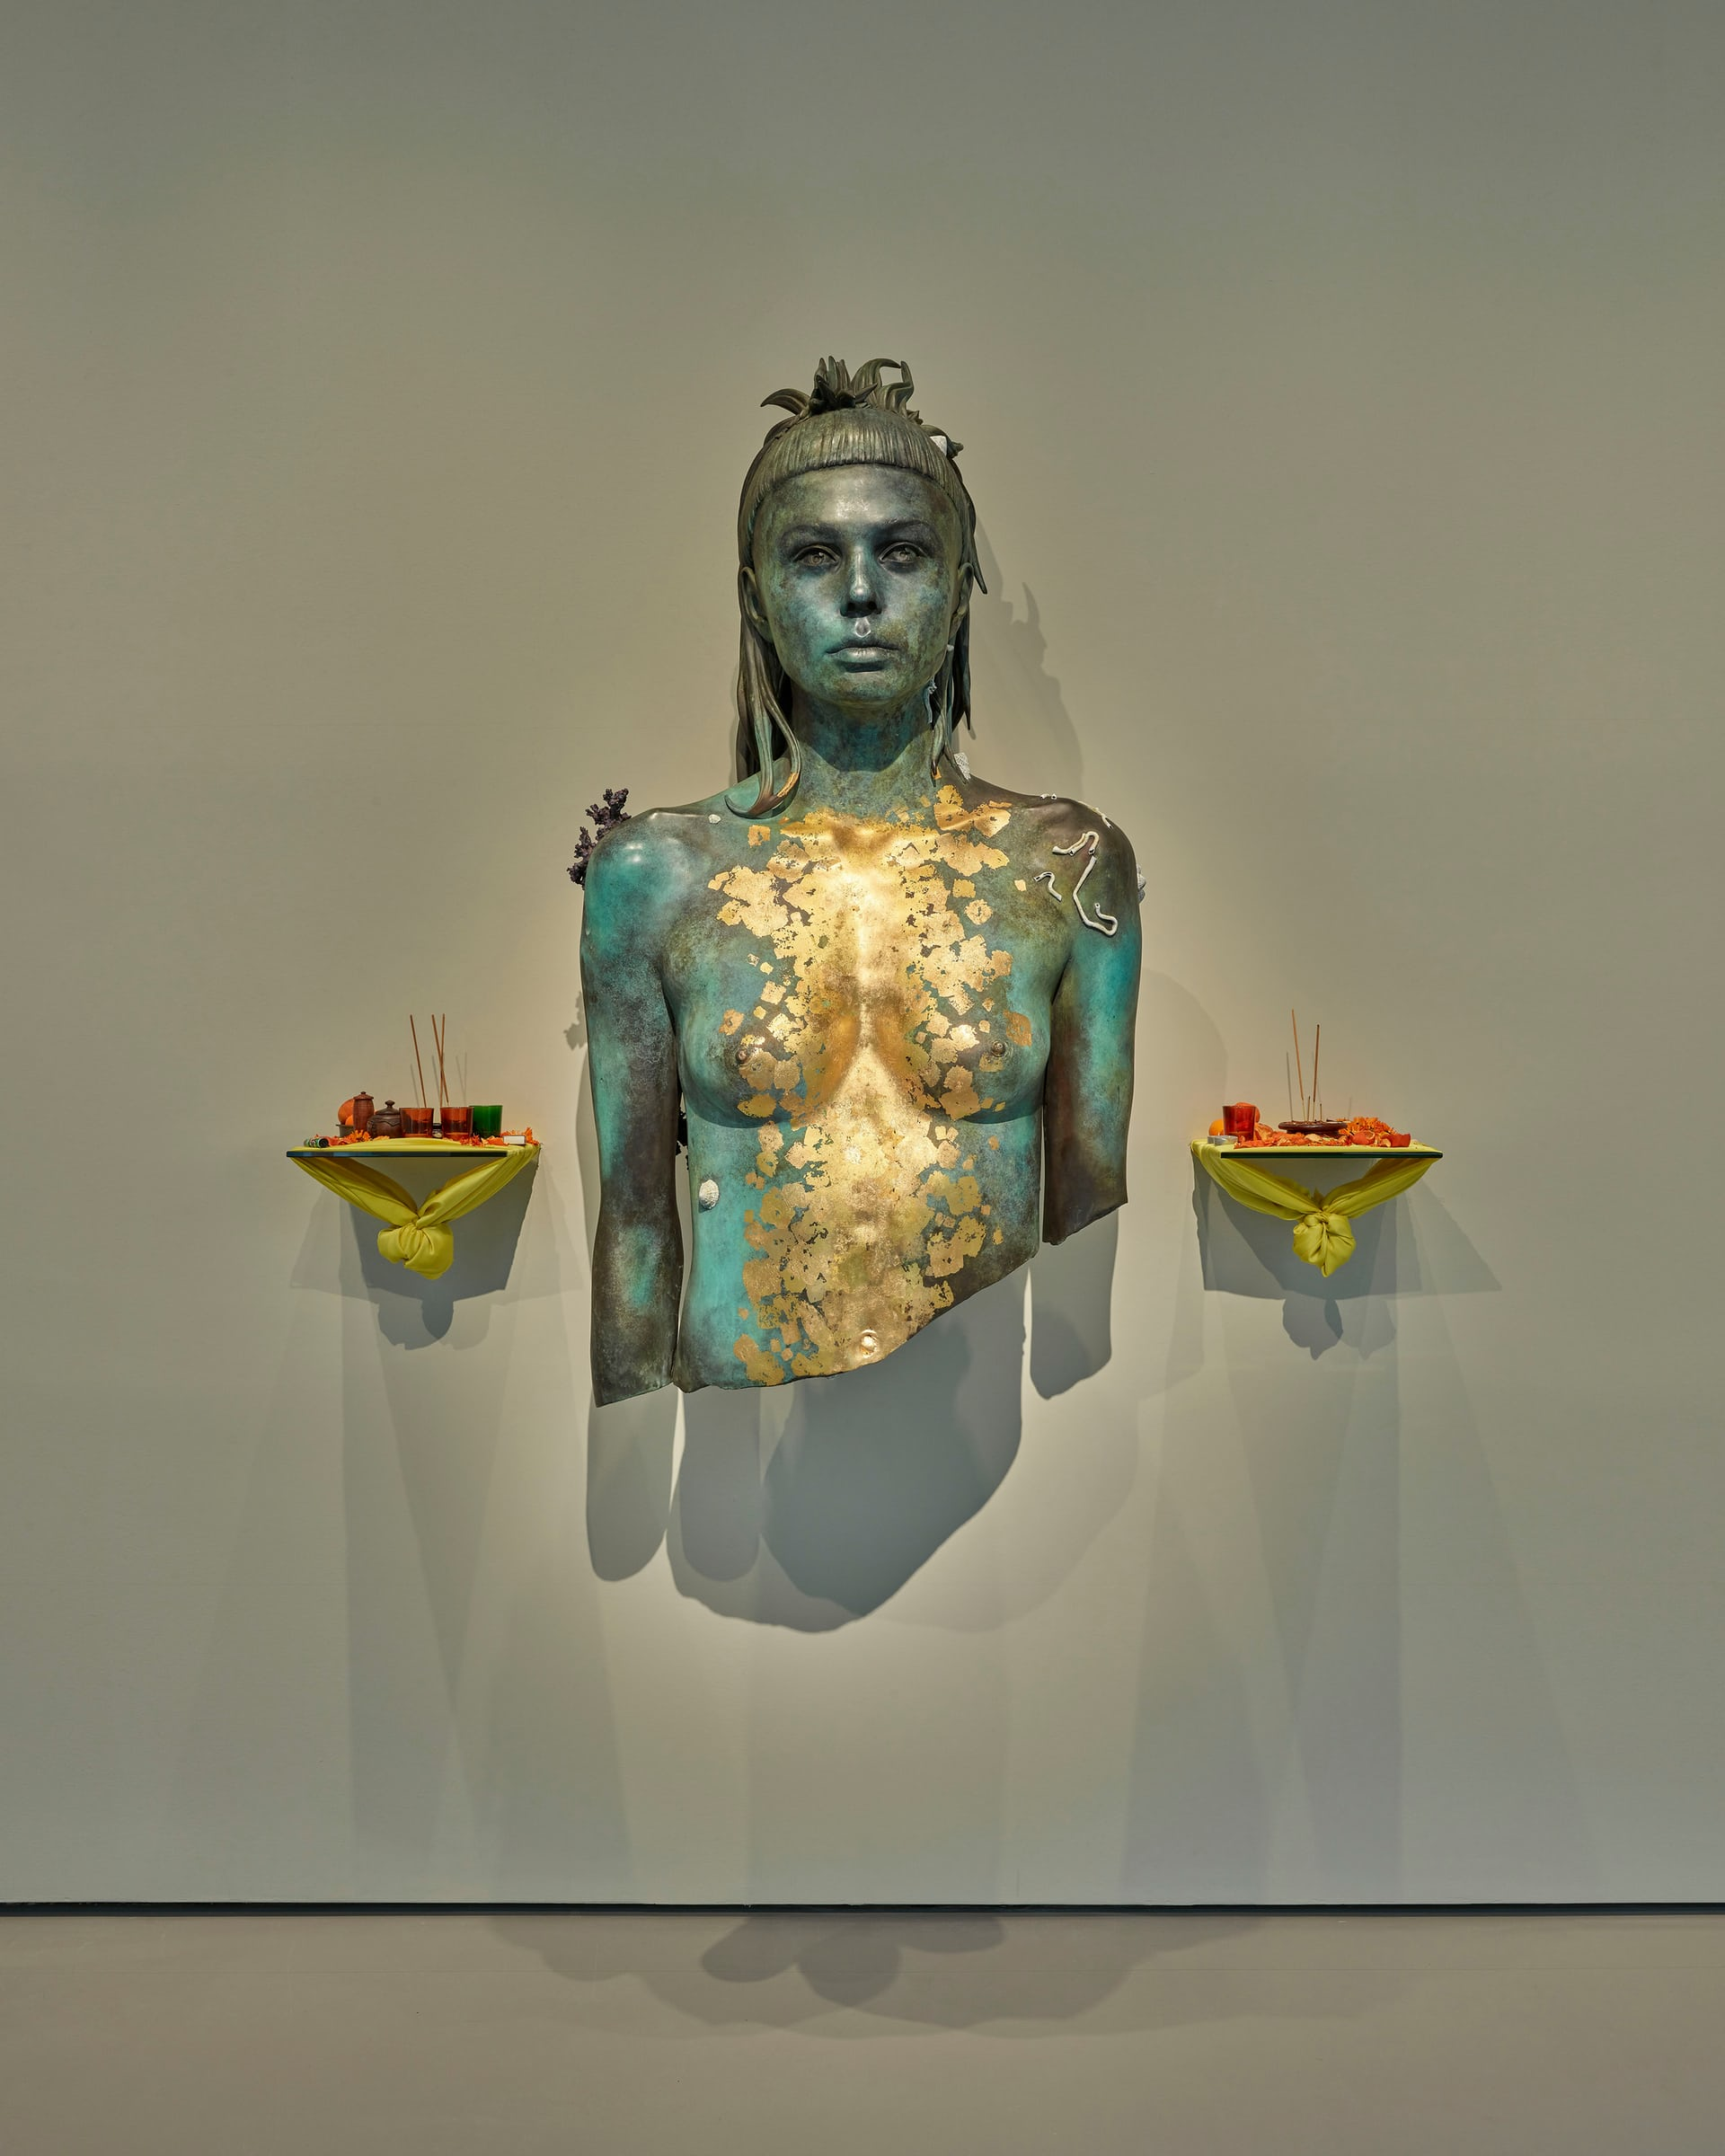 Aspect of Katie Ishtar ¥o-landi. Photograph: Prudence Cuming Associates – courtesy of Damien Hirst and Science Ltd, via: The Guardian